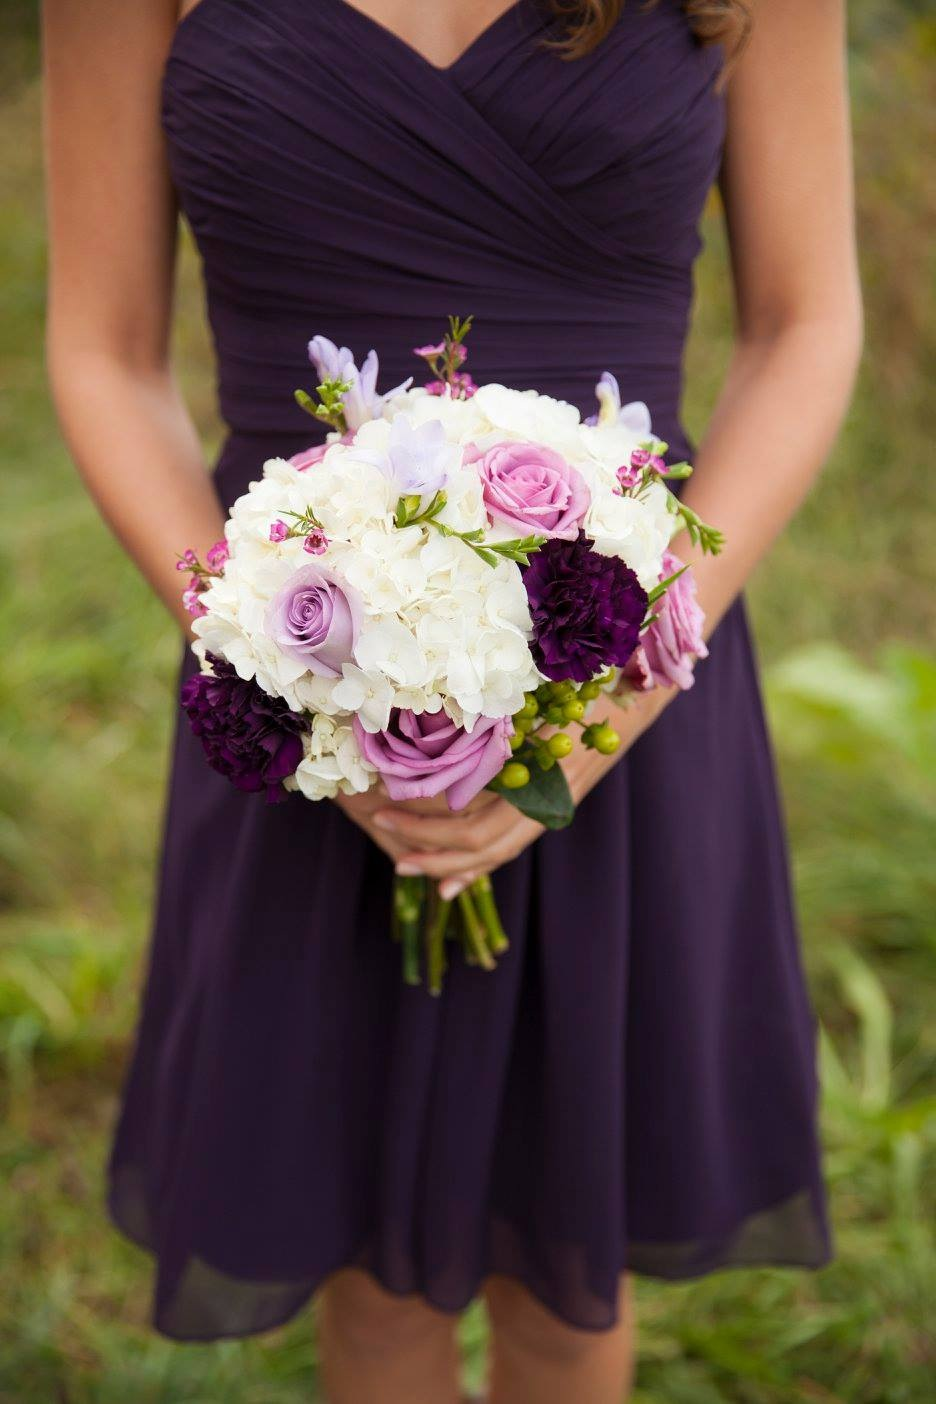 Magen_Kirk_Bridesmaid_Simply_yours_Weddings_Flowers_Freestone_Photography.jpeg